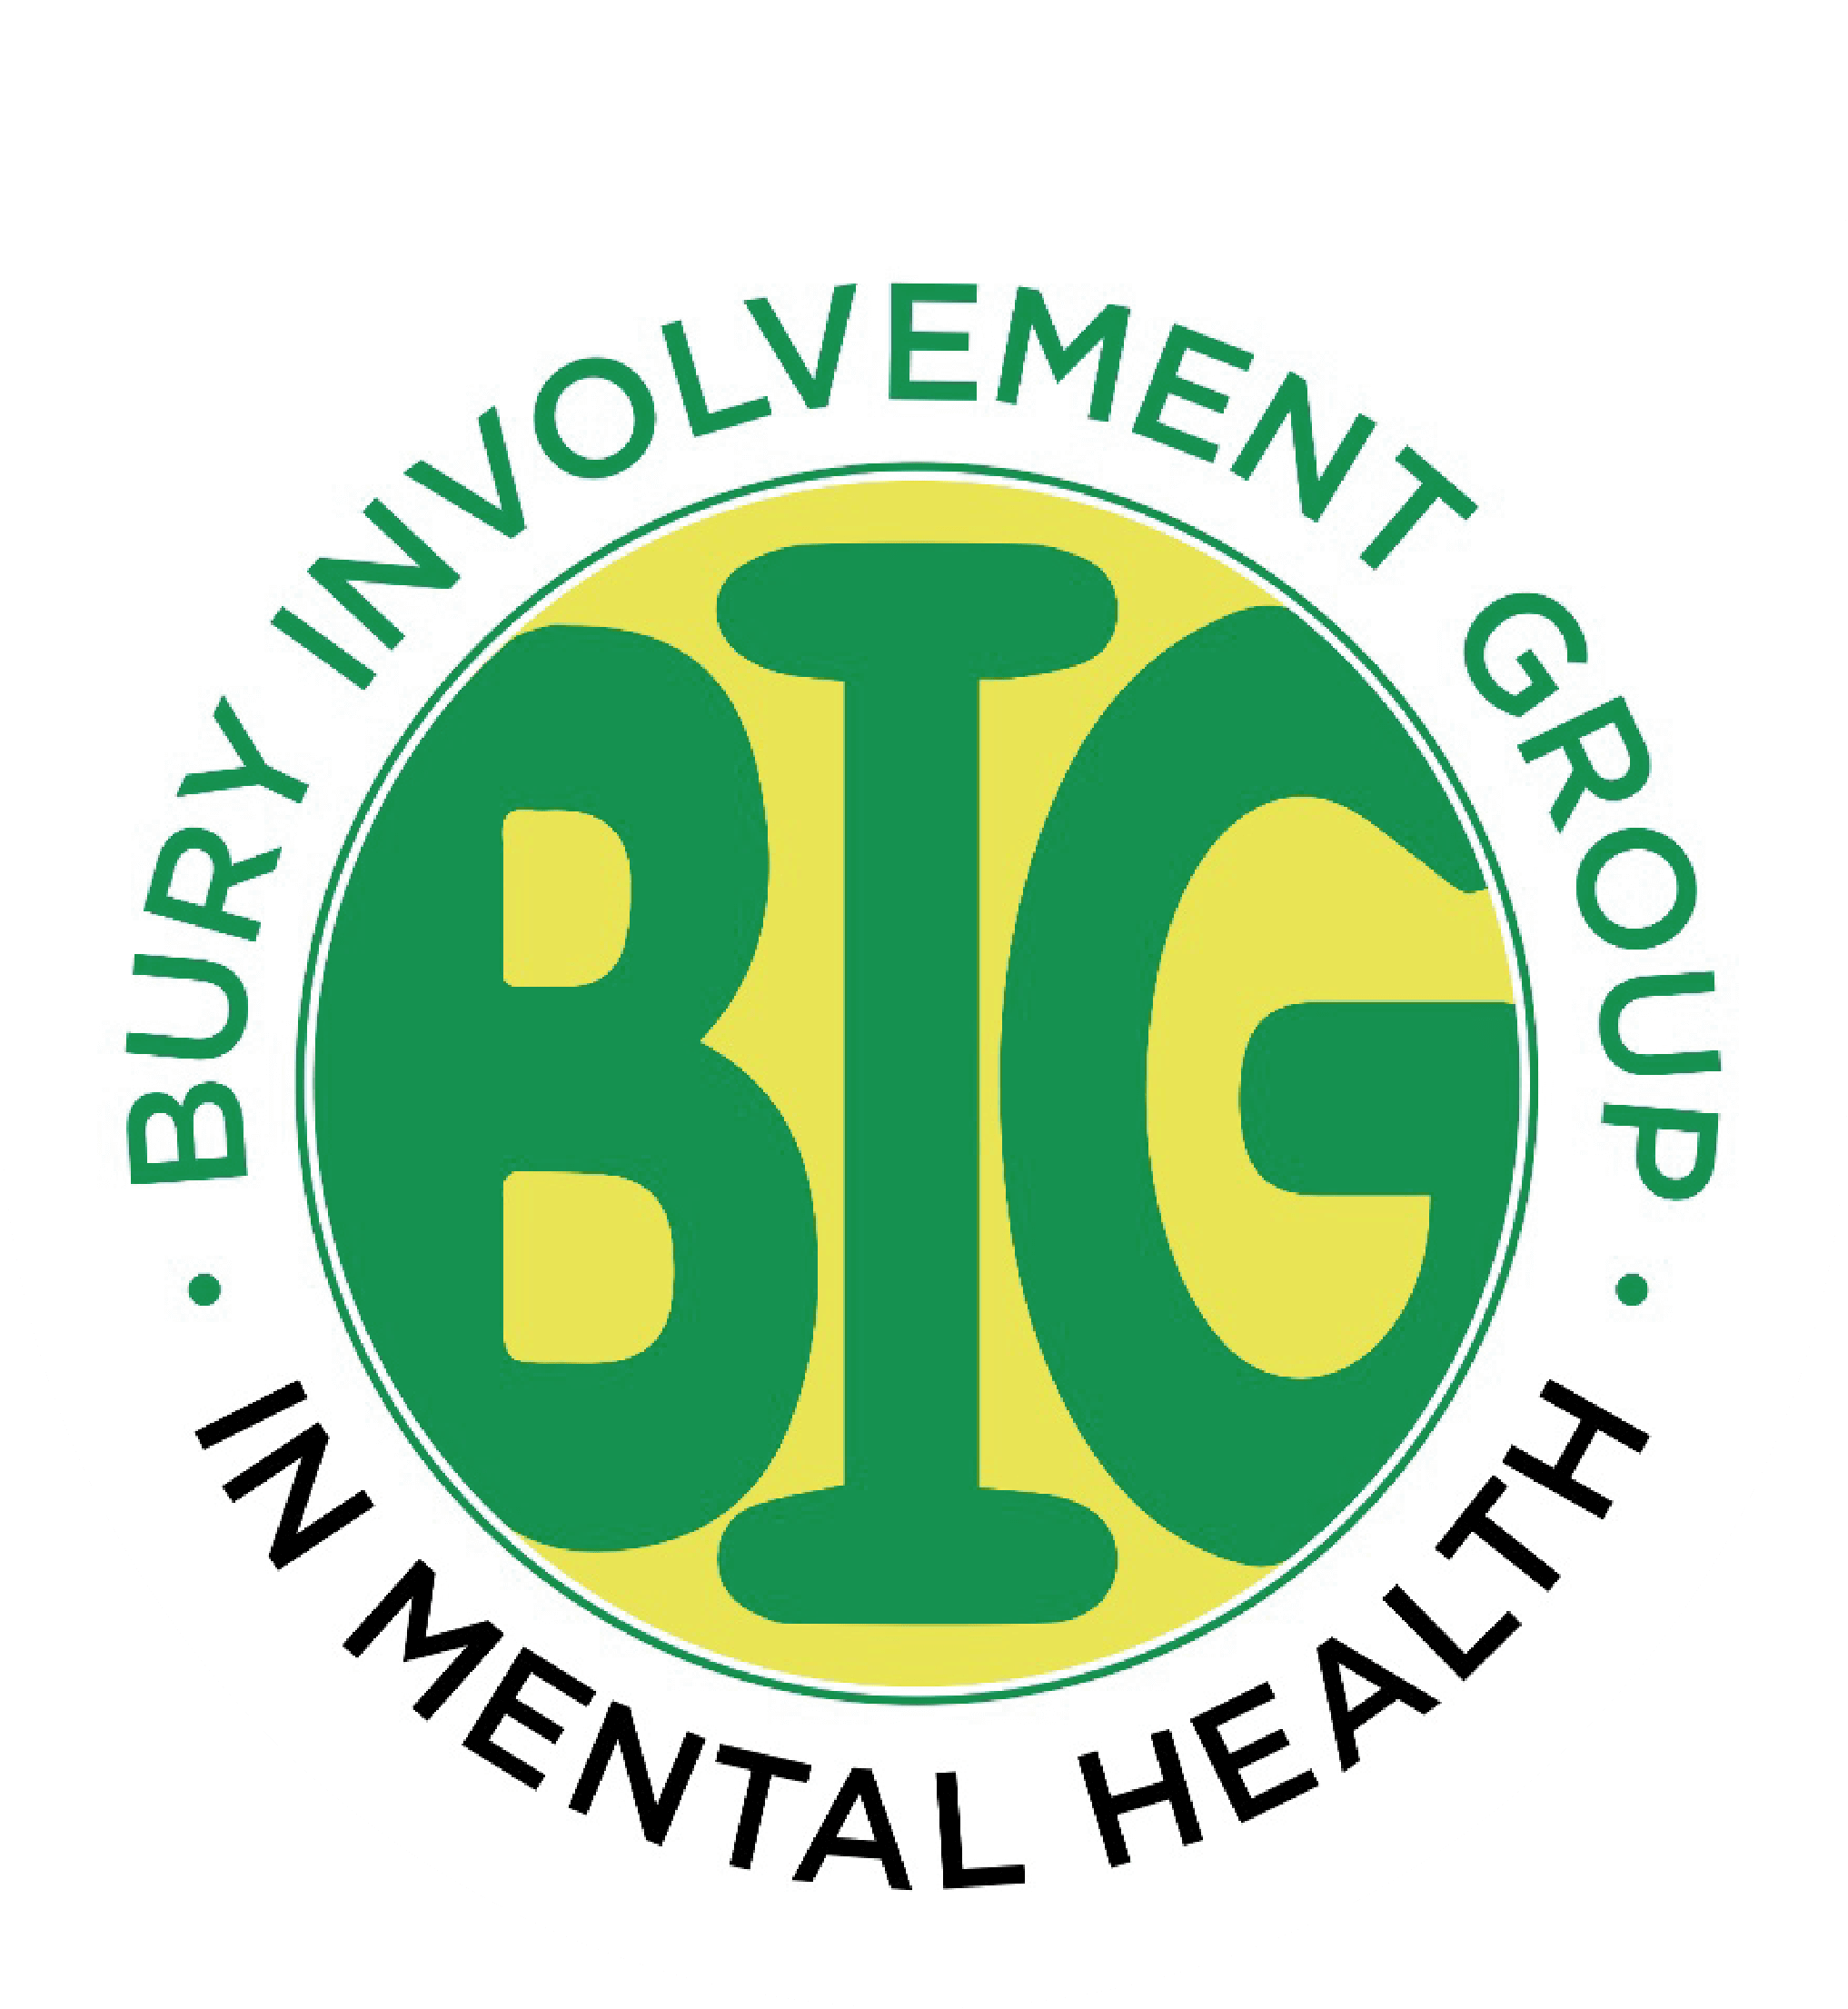 Bury Involvement Group - BIG in mental health